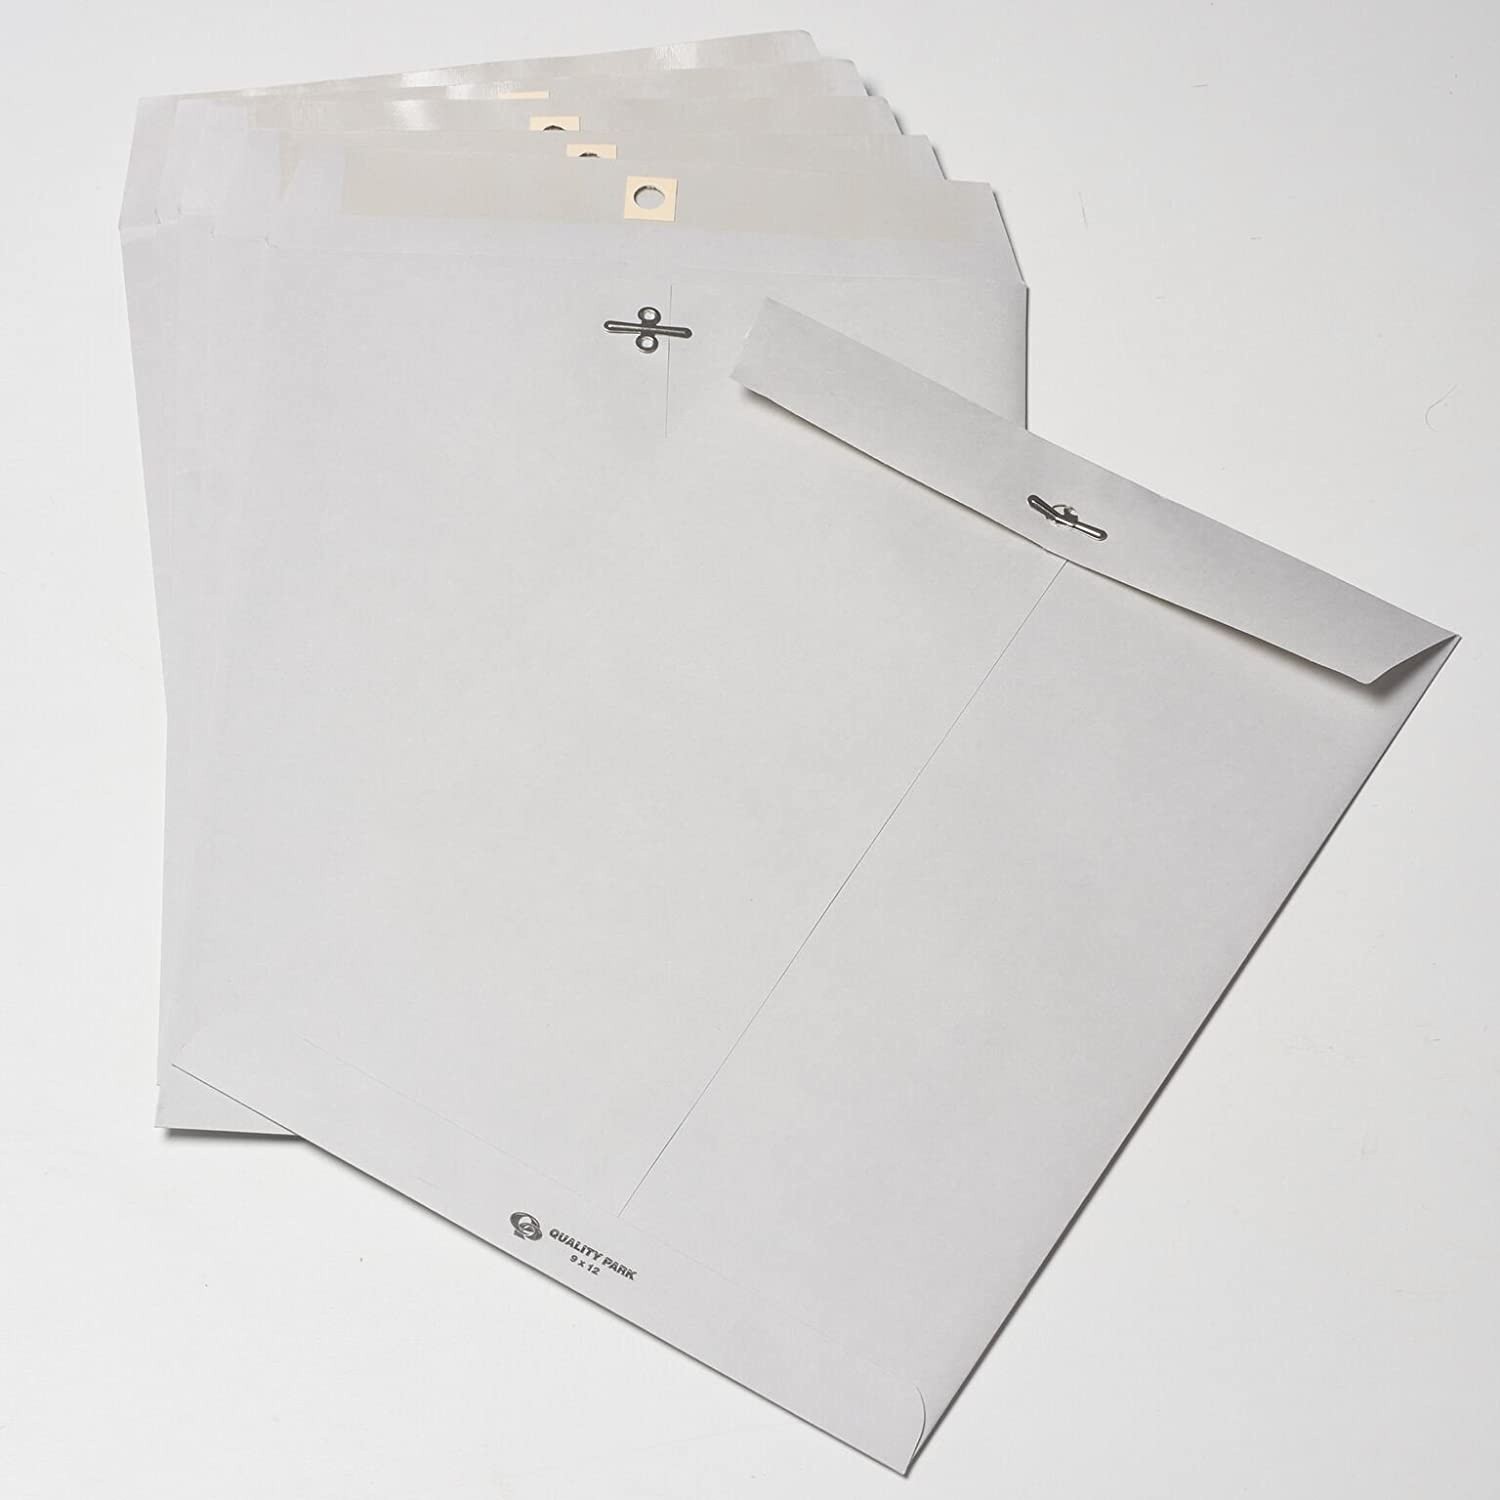 Quality Park, Clasp Envelopes, Gummed, Executive Gray, 10x13, 100 per Box (38597) : Office Products